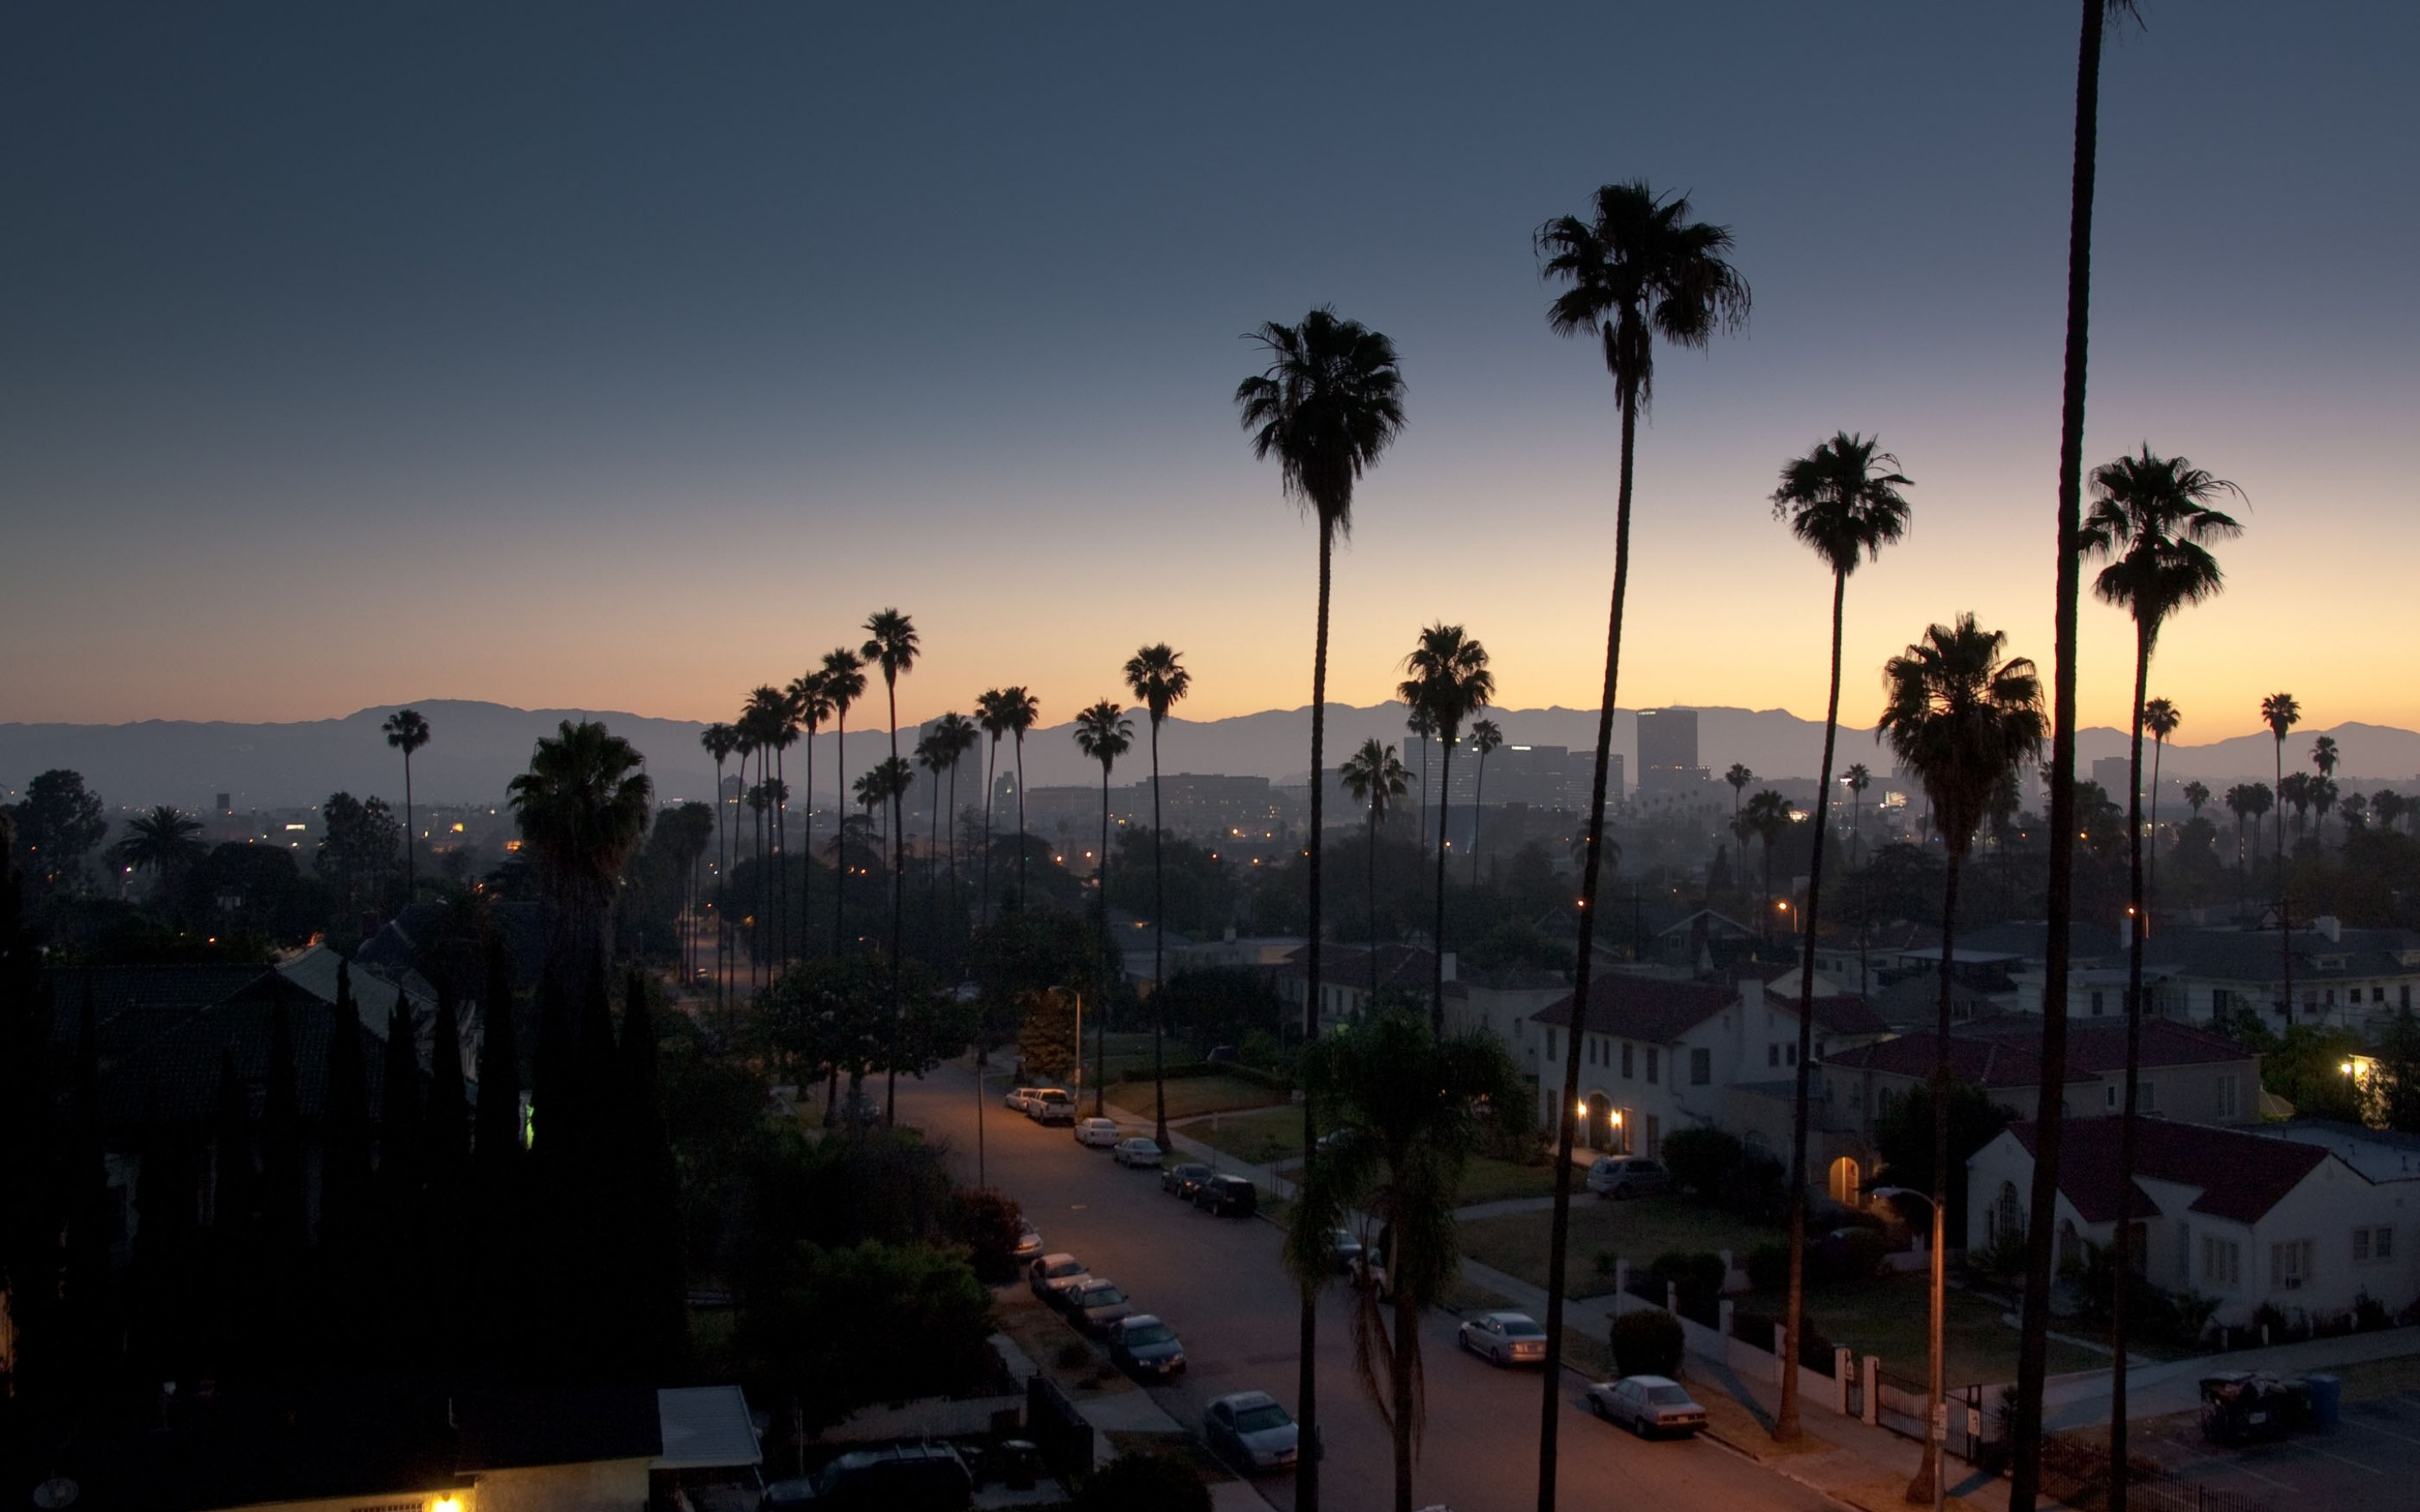 10 hd los angeles wallpapers for In the city of la